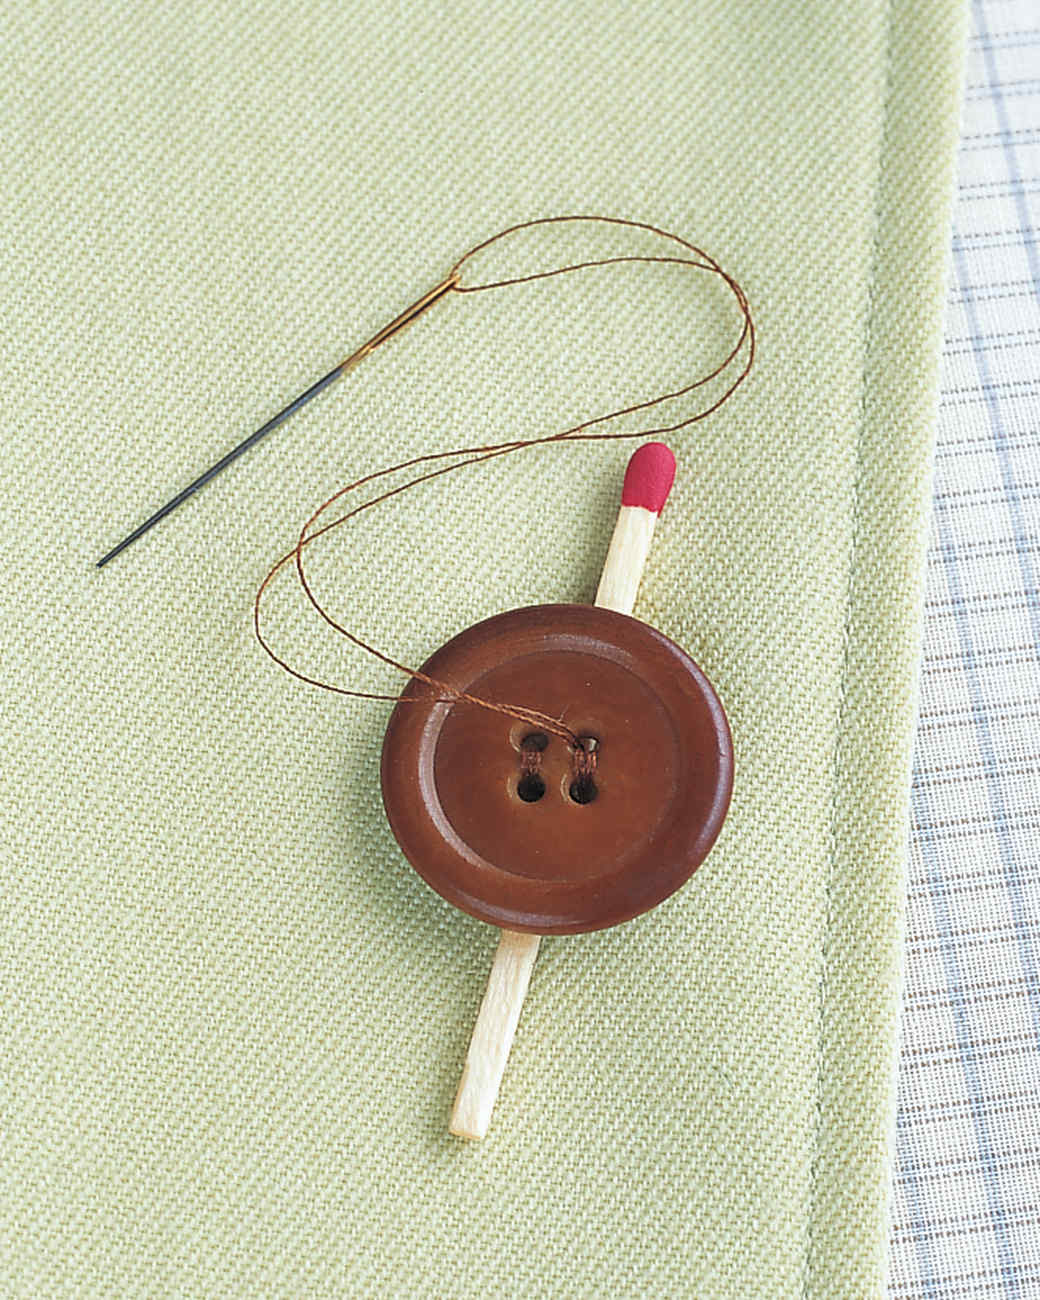 coat-button-matchstick-0915.jpg